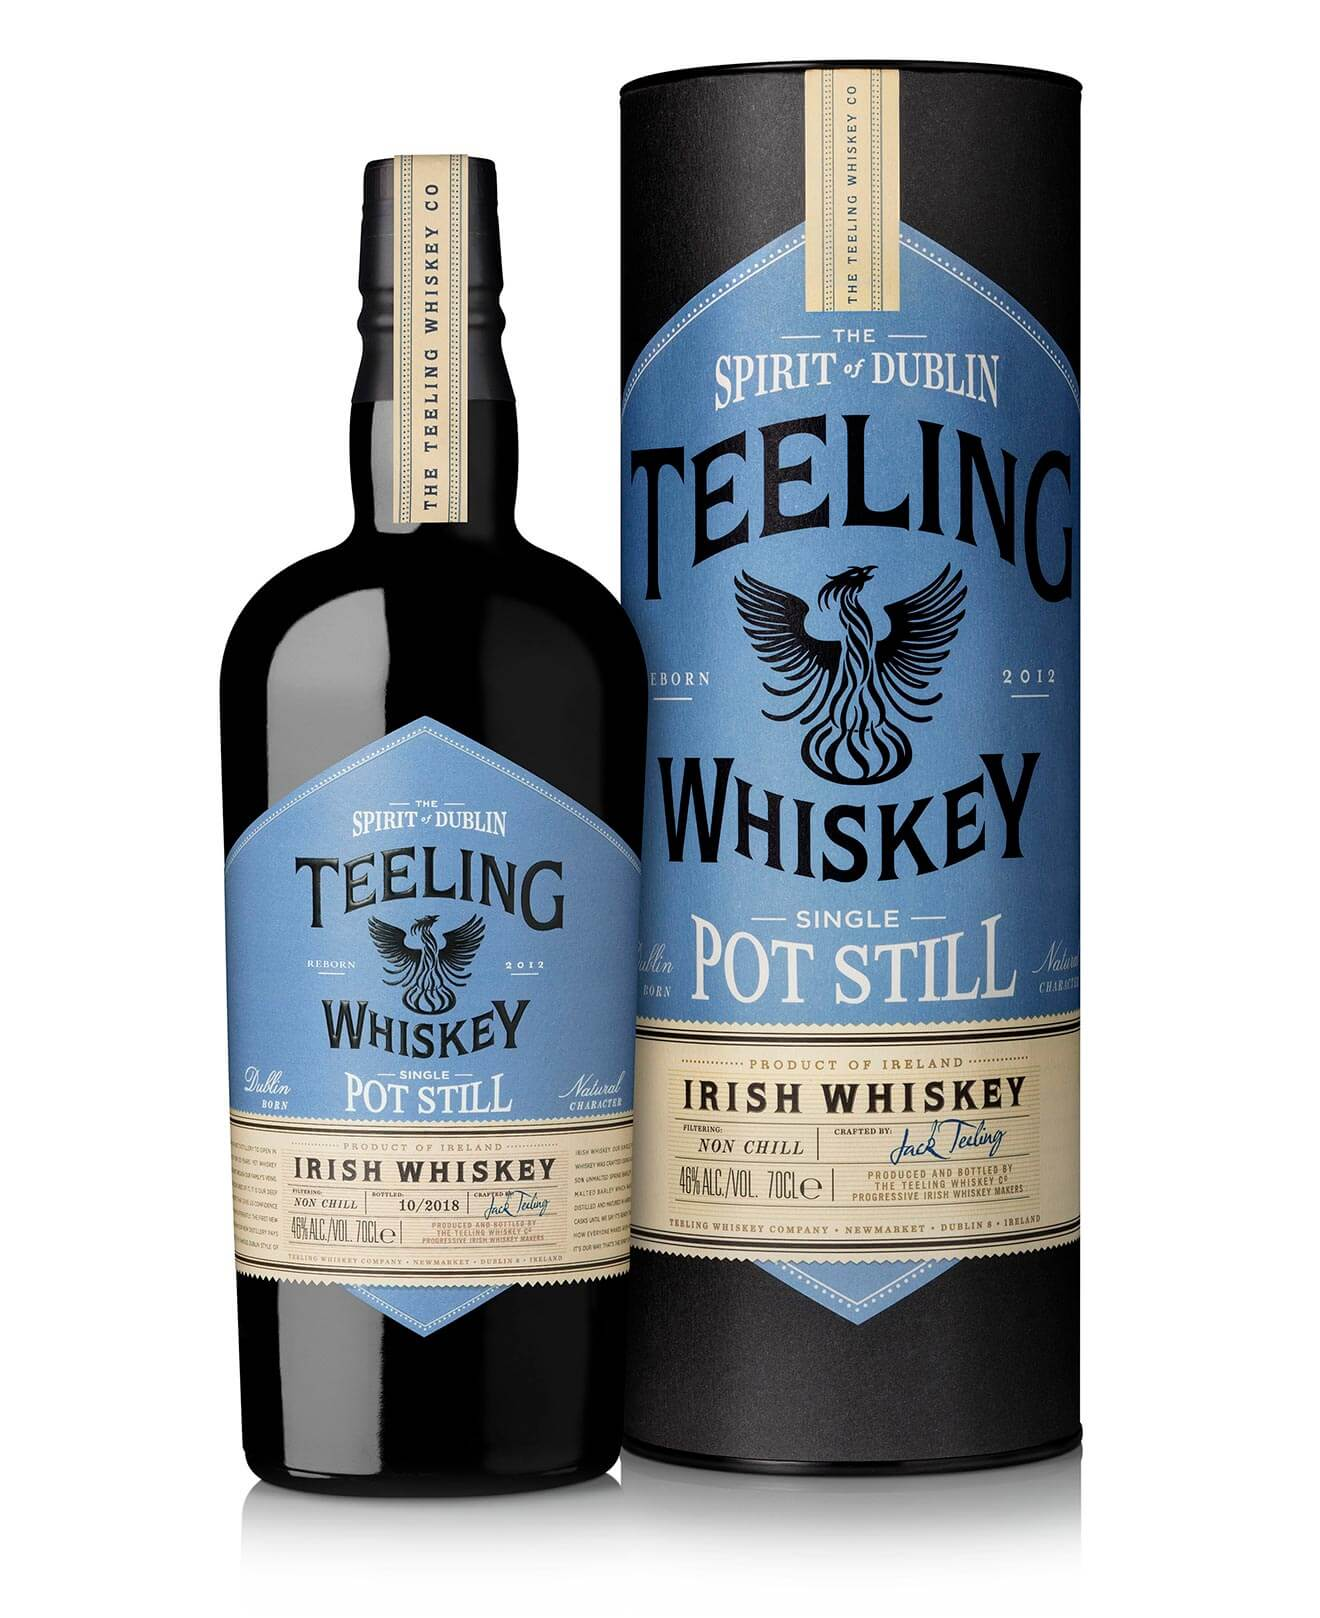 Teeling Single Pot Still Irish Whiskey, bottle and package on white